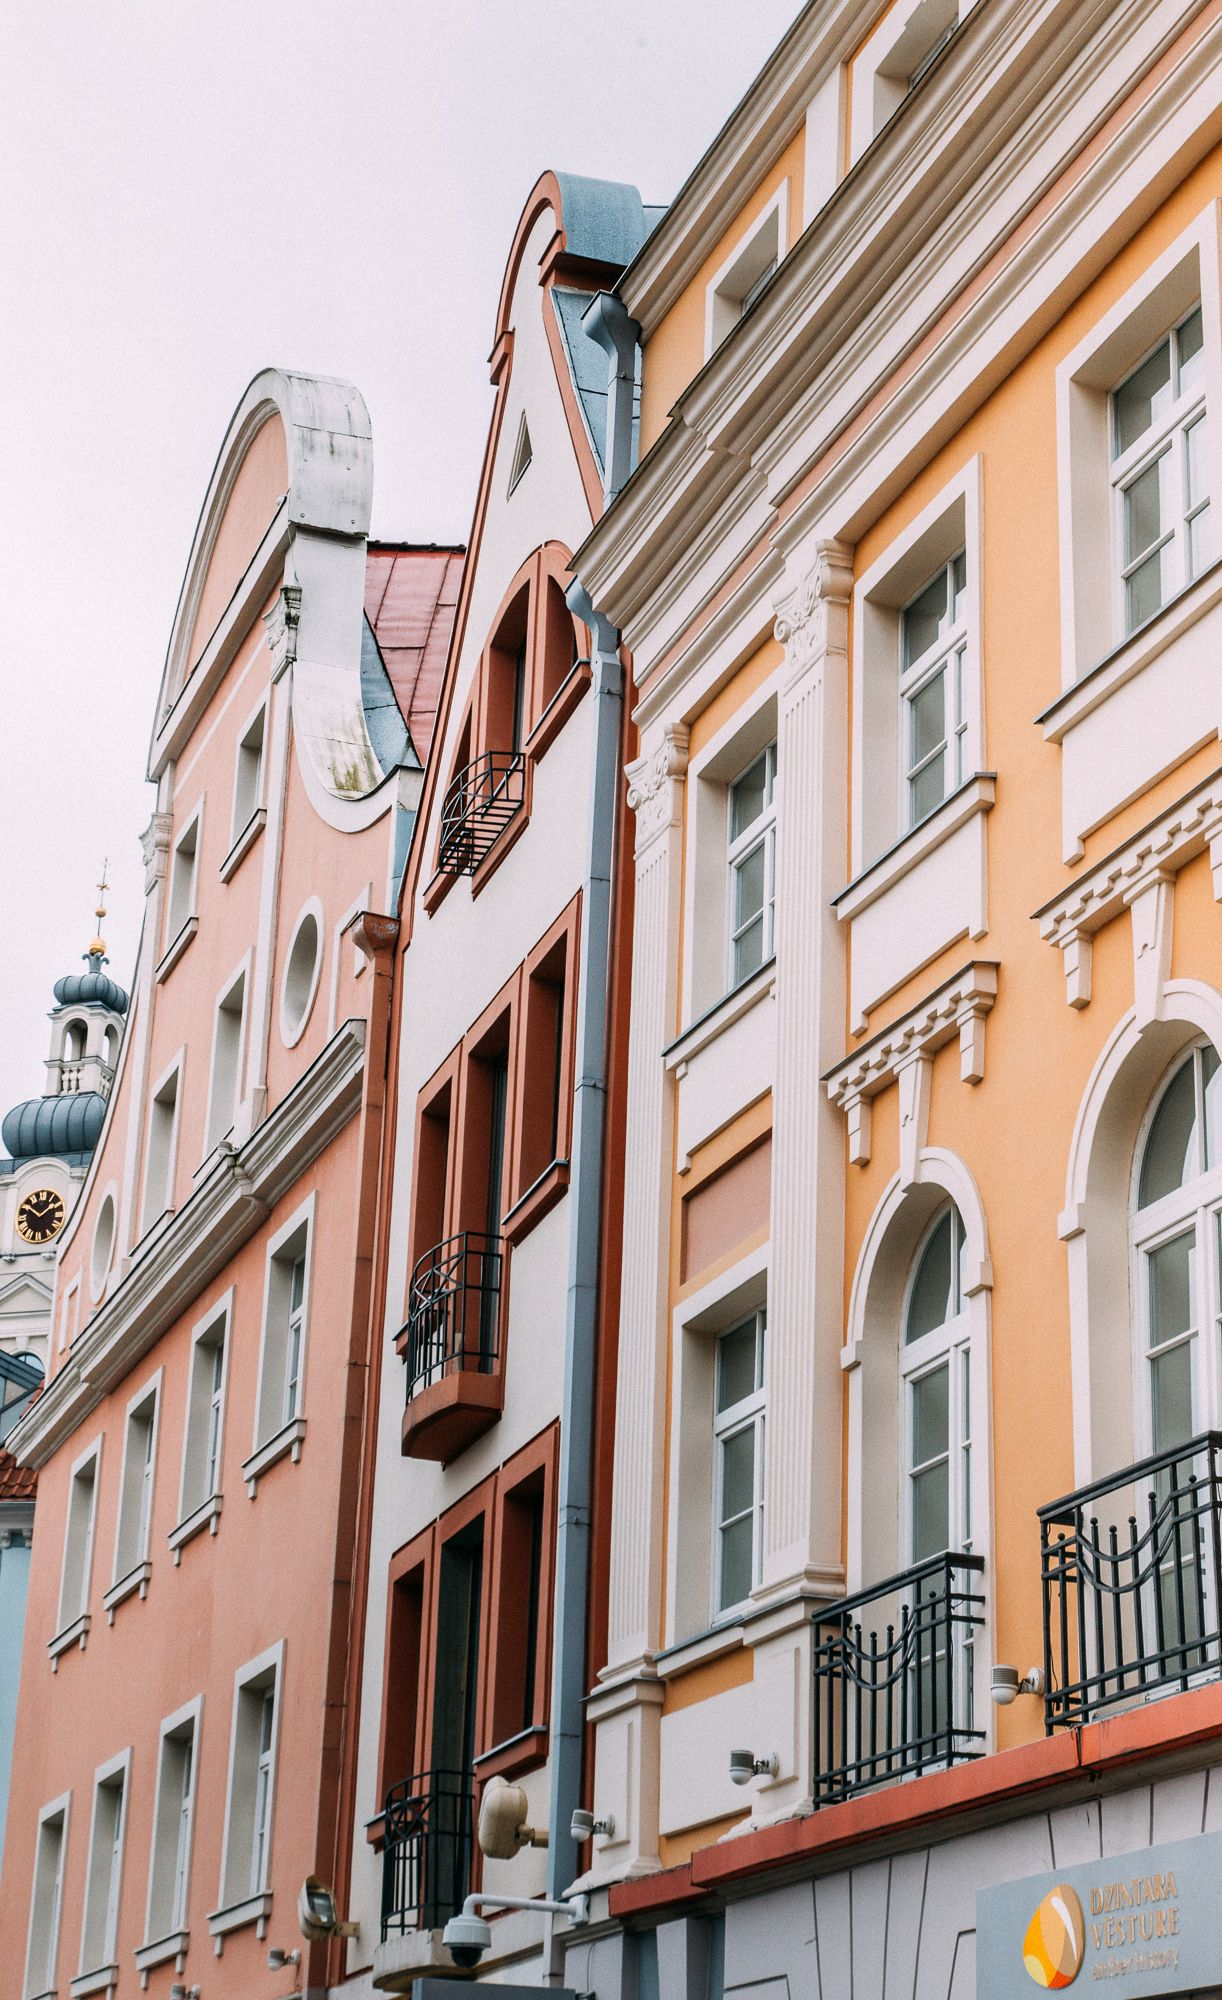 20 Pictures of Riga to Inspire You to Visit // Old Town ...